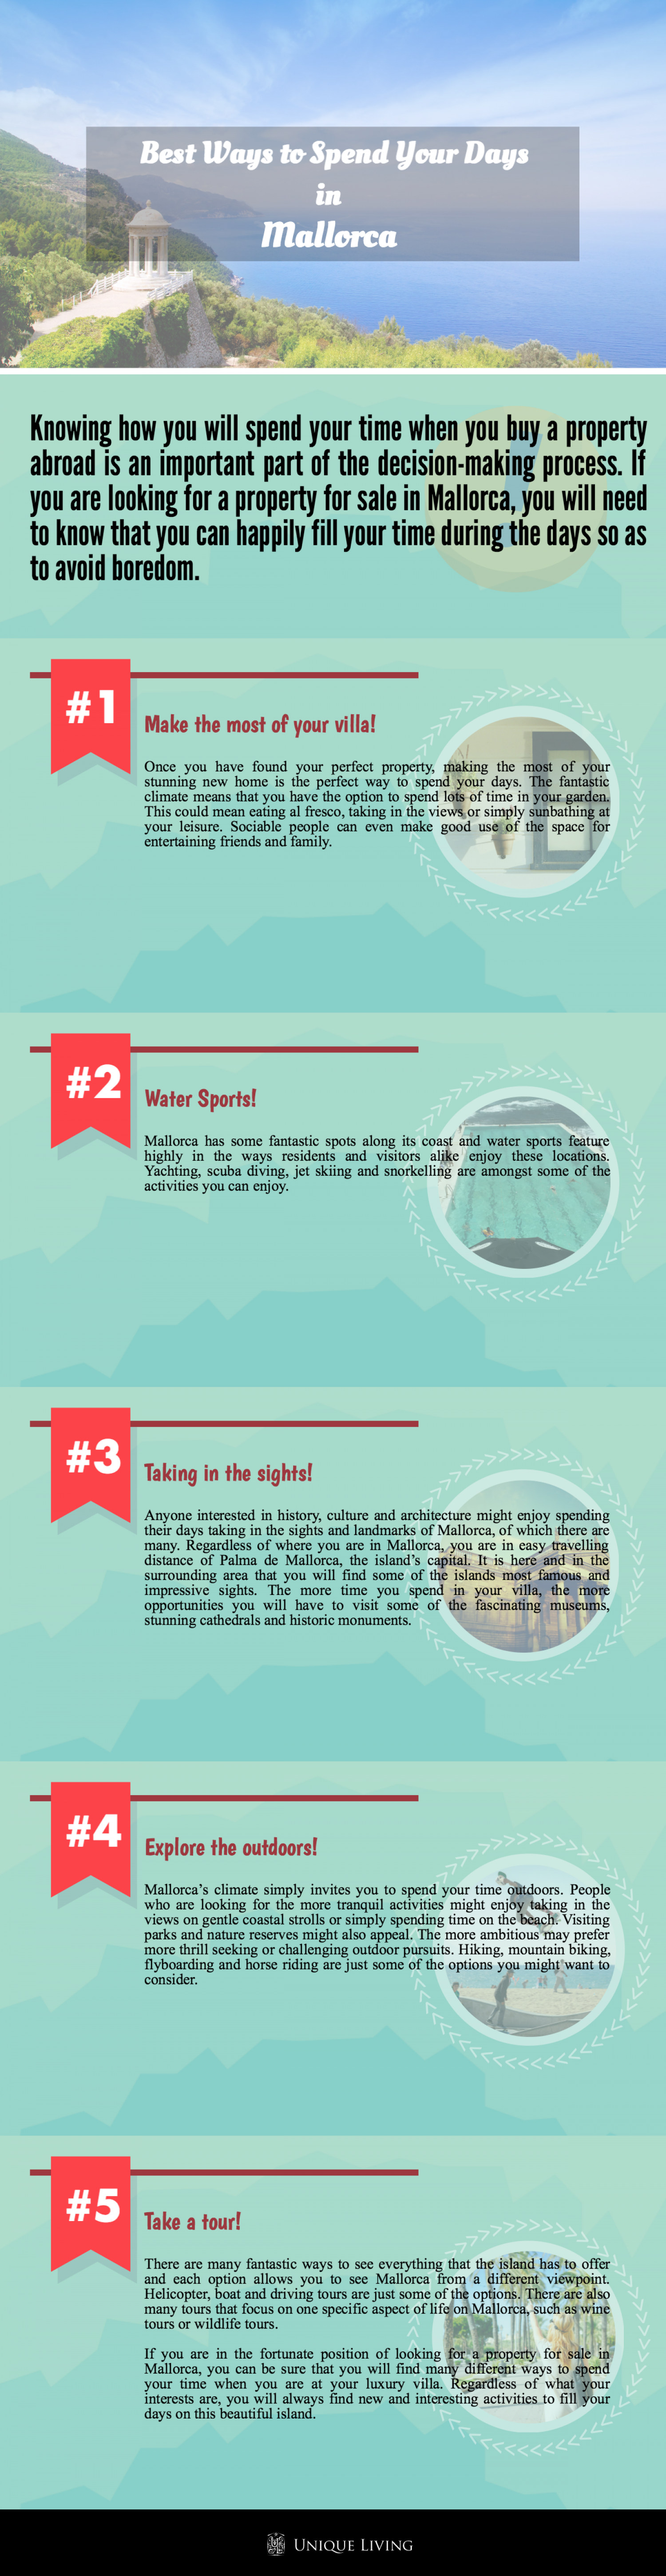 Best Ways to Spend Your Days in Mallorca Infographic